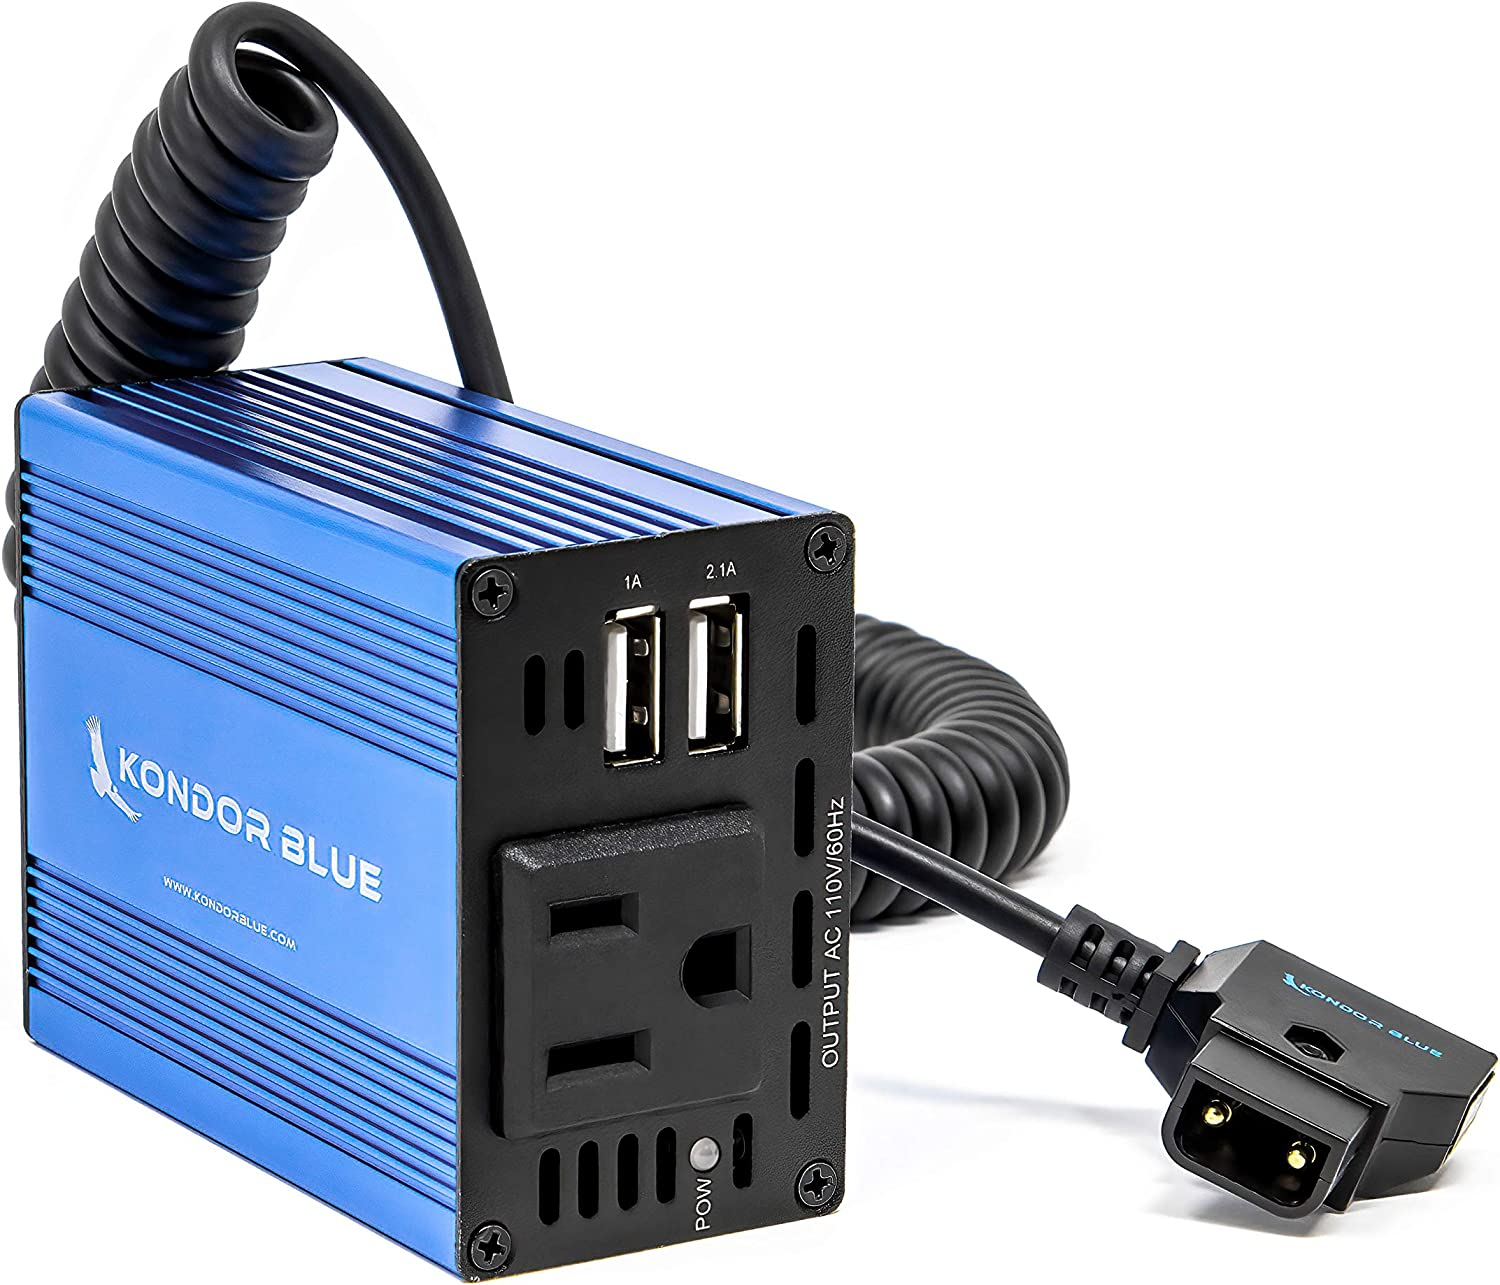 P-TAP V Mount Gold Battery More 110V KONDOR BLUE SPARK100 Quasar D TAP to AC Power Supply Inverter 100W Mobile Wall Plug Outlet for powering Quasar T8 T12 X Crossfade LED Lights House Bulbs Lamps